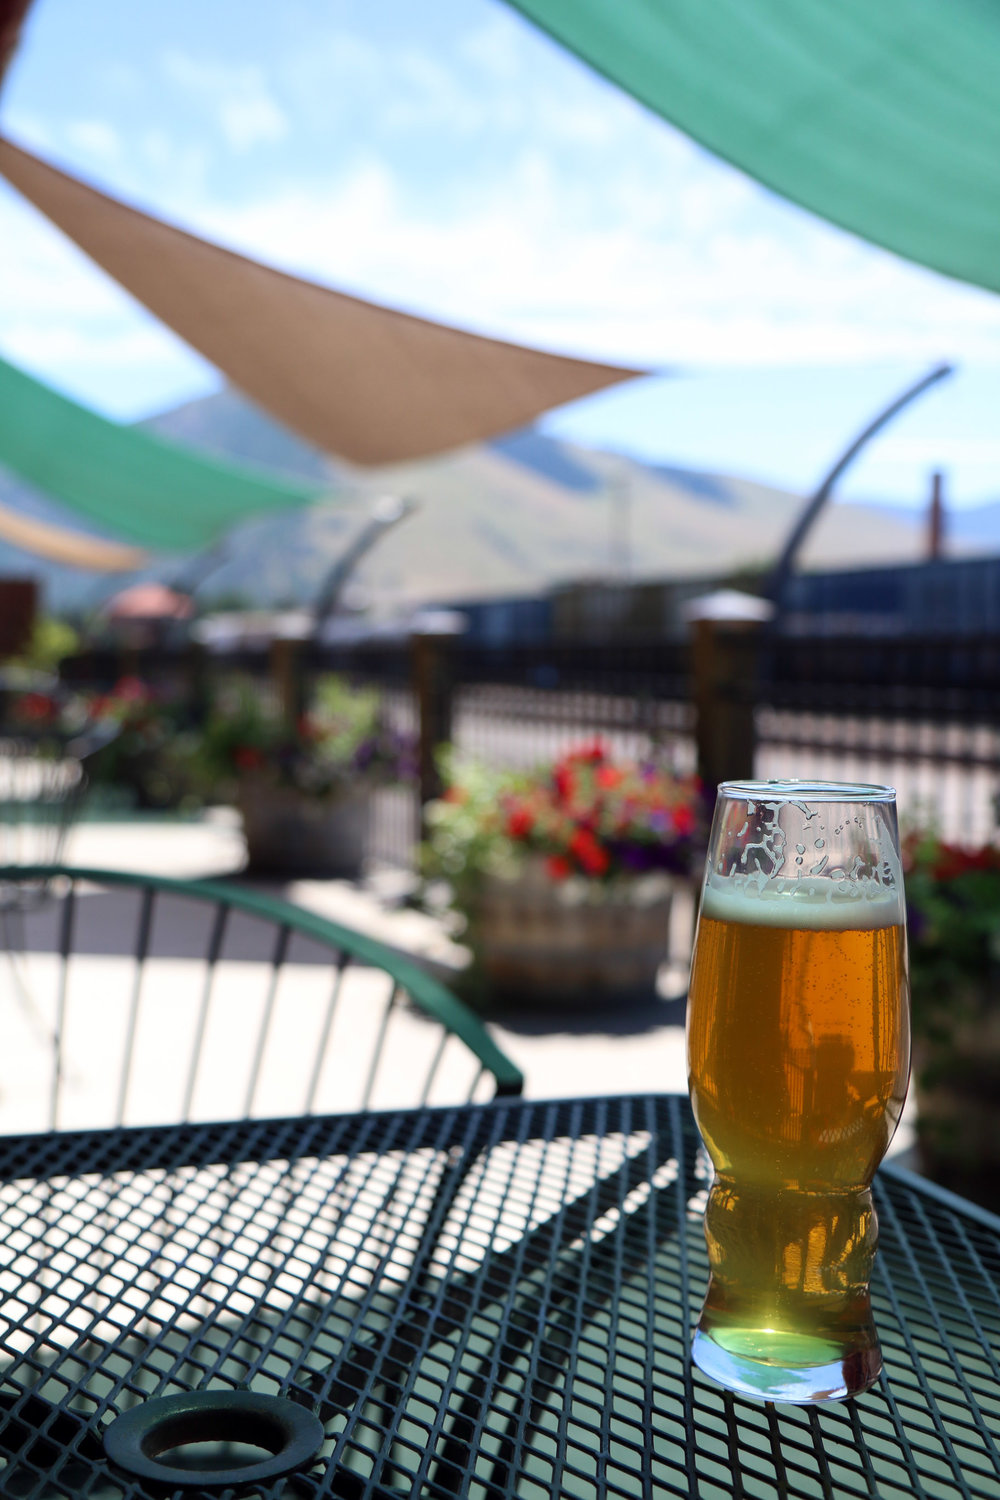 Northside Kettlehouse Brewery's patio in Missoula, Montana. The brewery has a great patio over the railroad tracks.